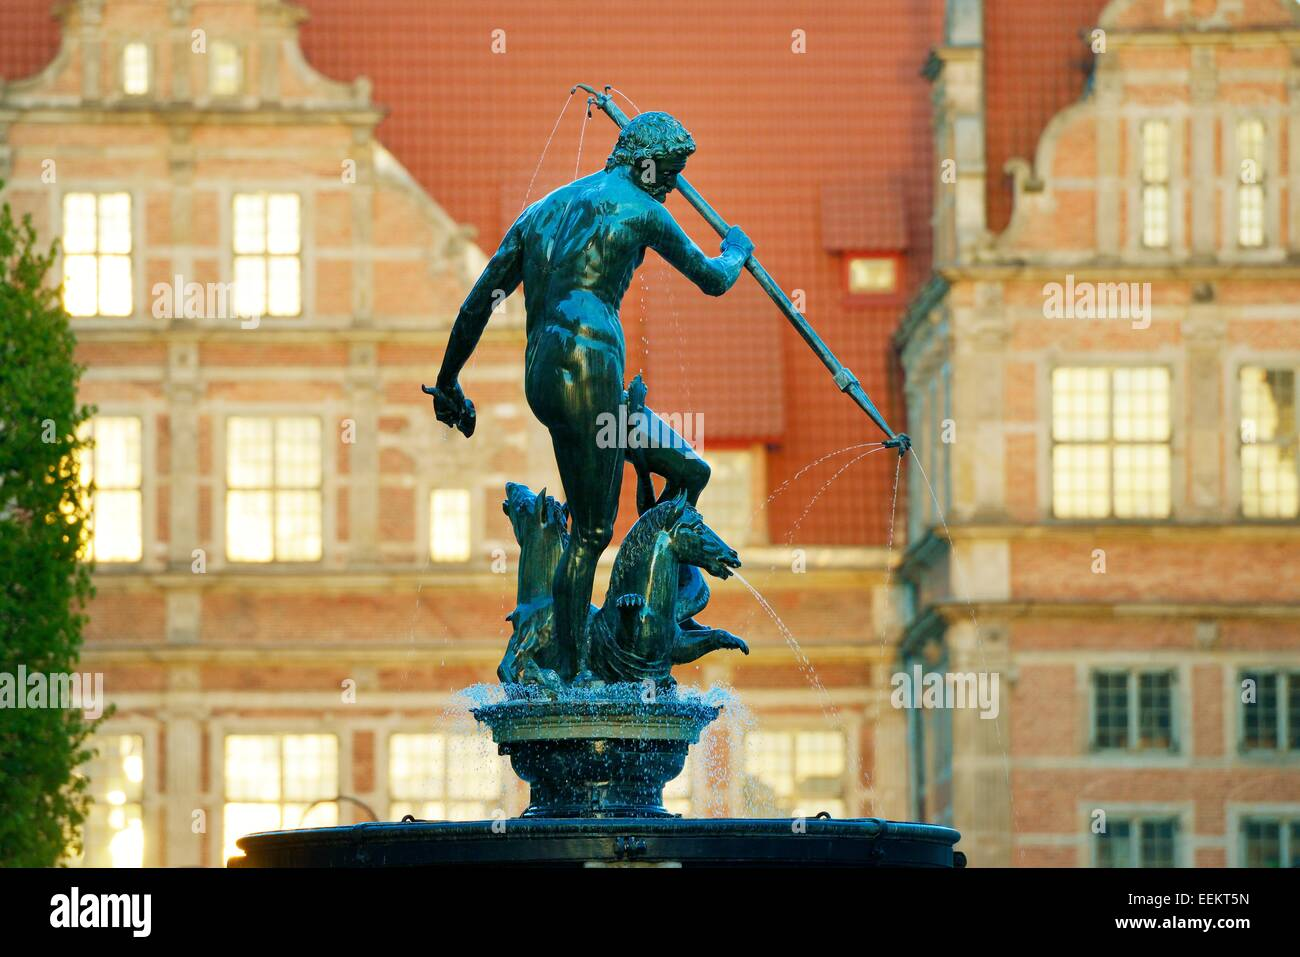 Gdansk Poland. The Old Town. The Neptune Fountain, erected 1633, with the ornate façade of the Green Gate behind - Stock Image